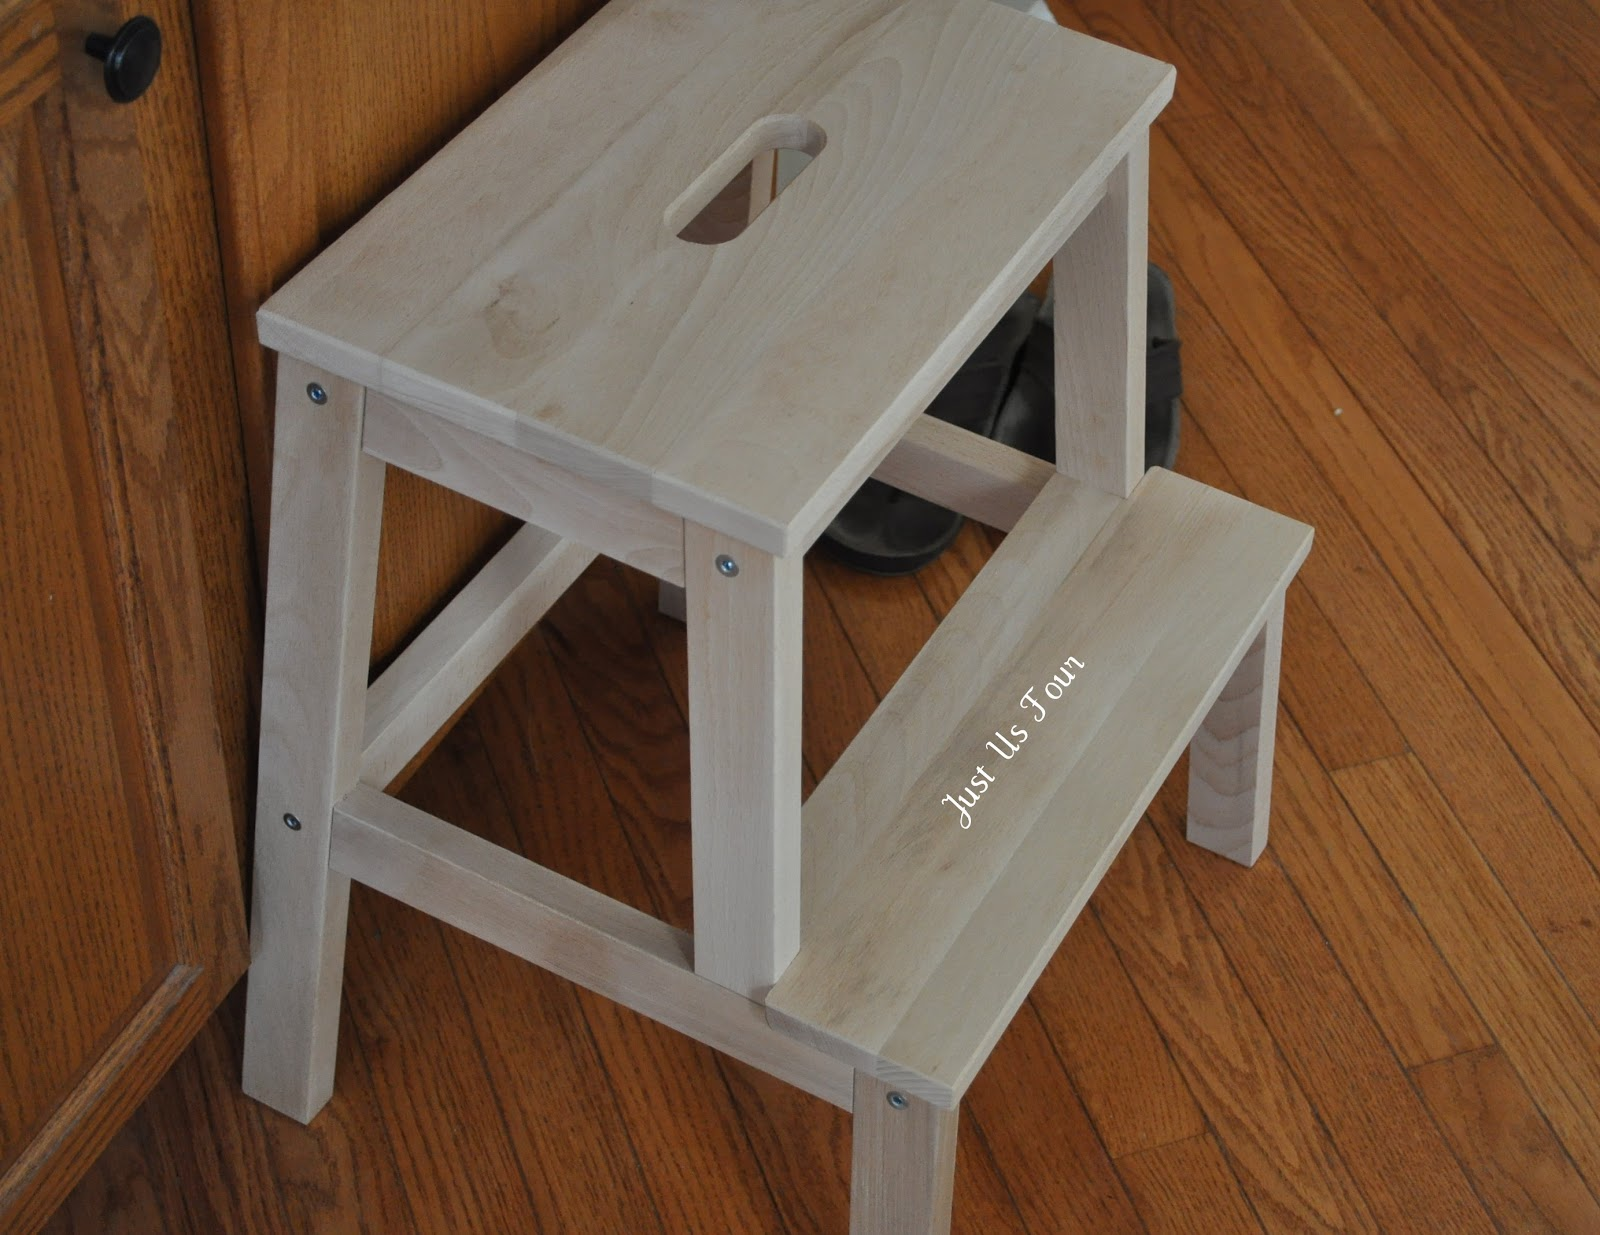 stepping up and stepping out my suburban kitchen with wooden step stool. & Wooden Step Stool. Awesome Reserved For Nicole Antique Step Stool ... islam-shia.org